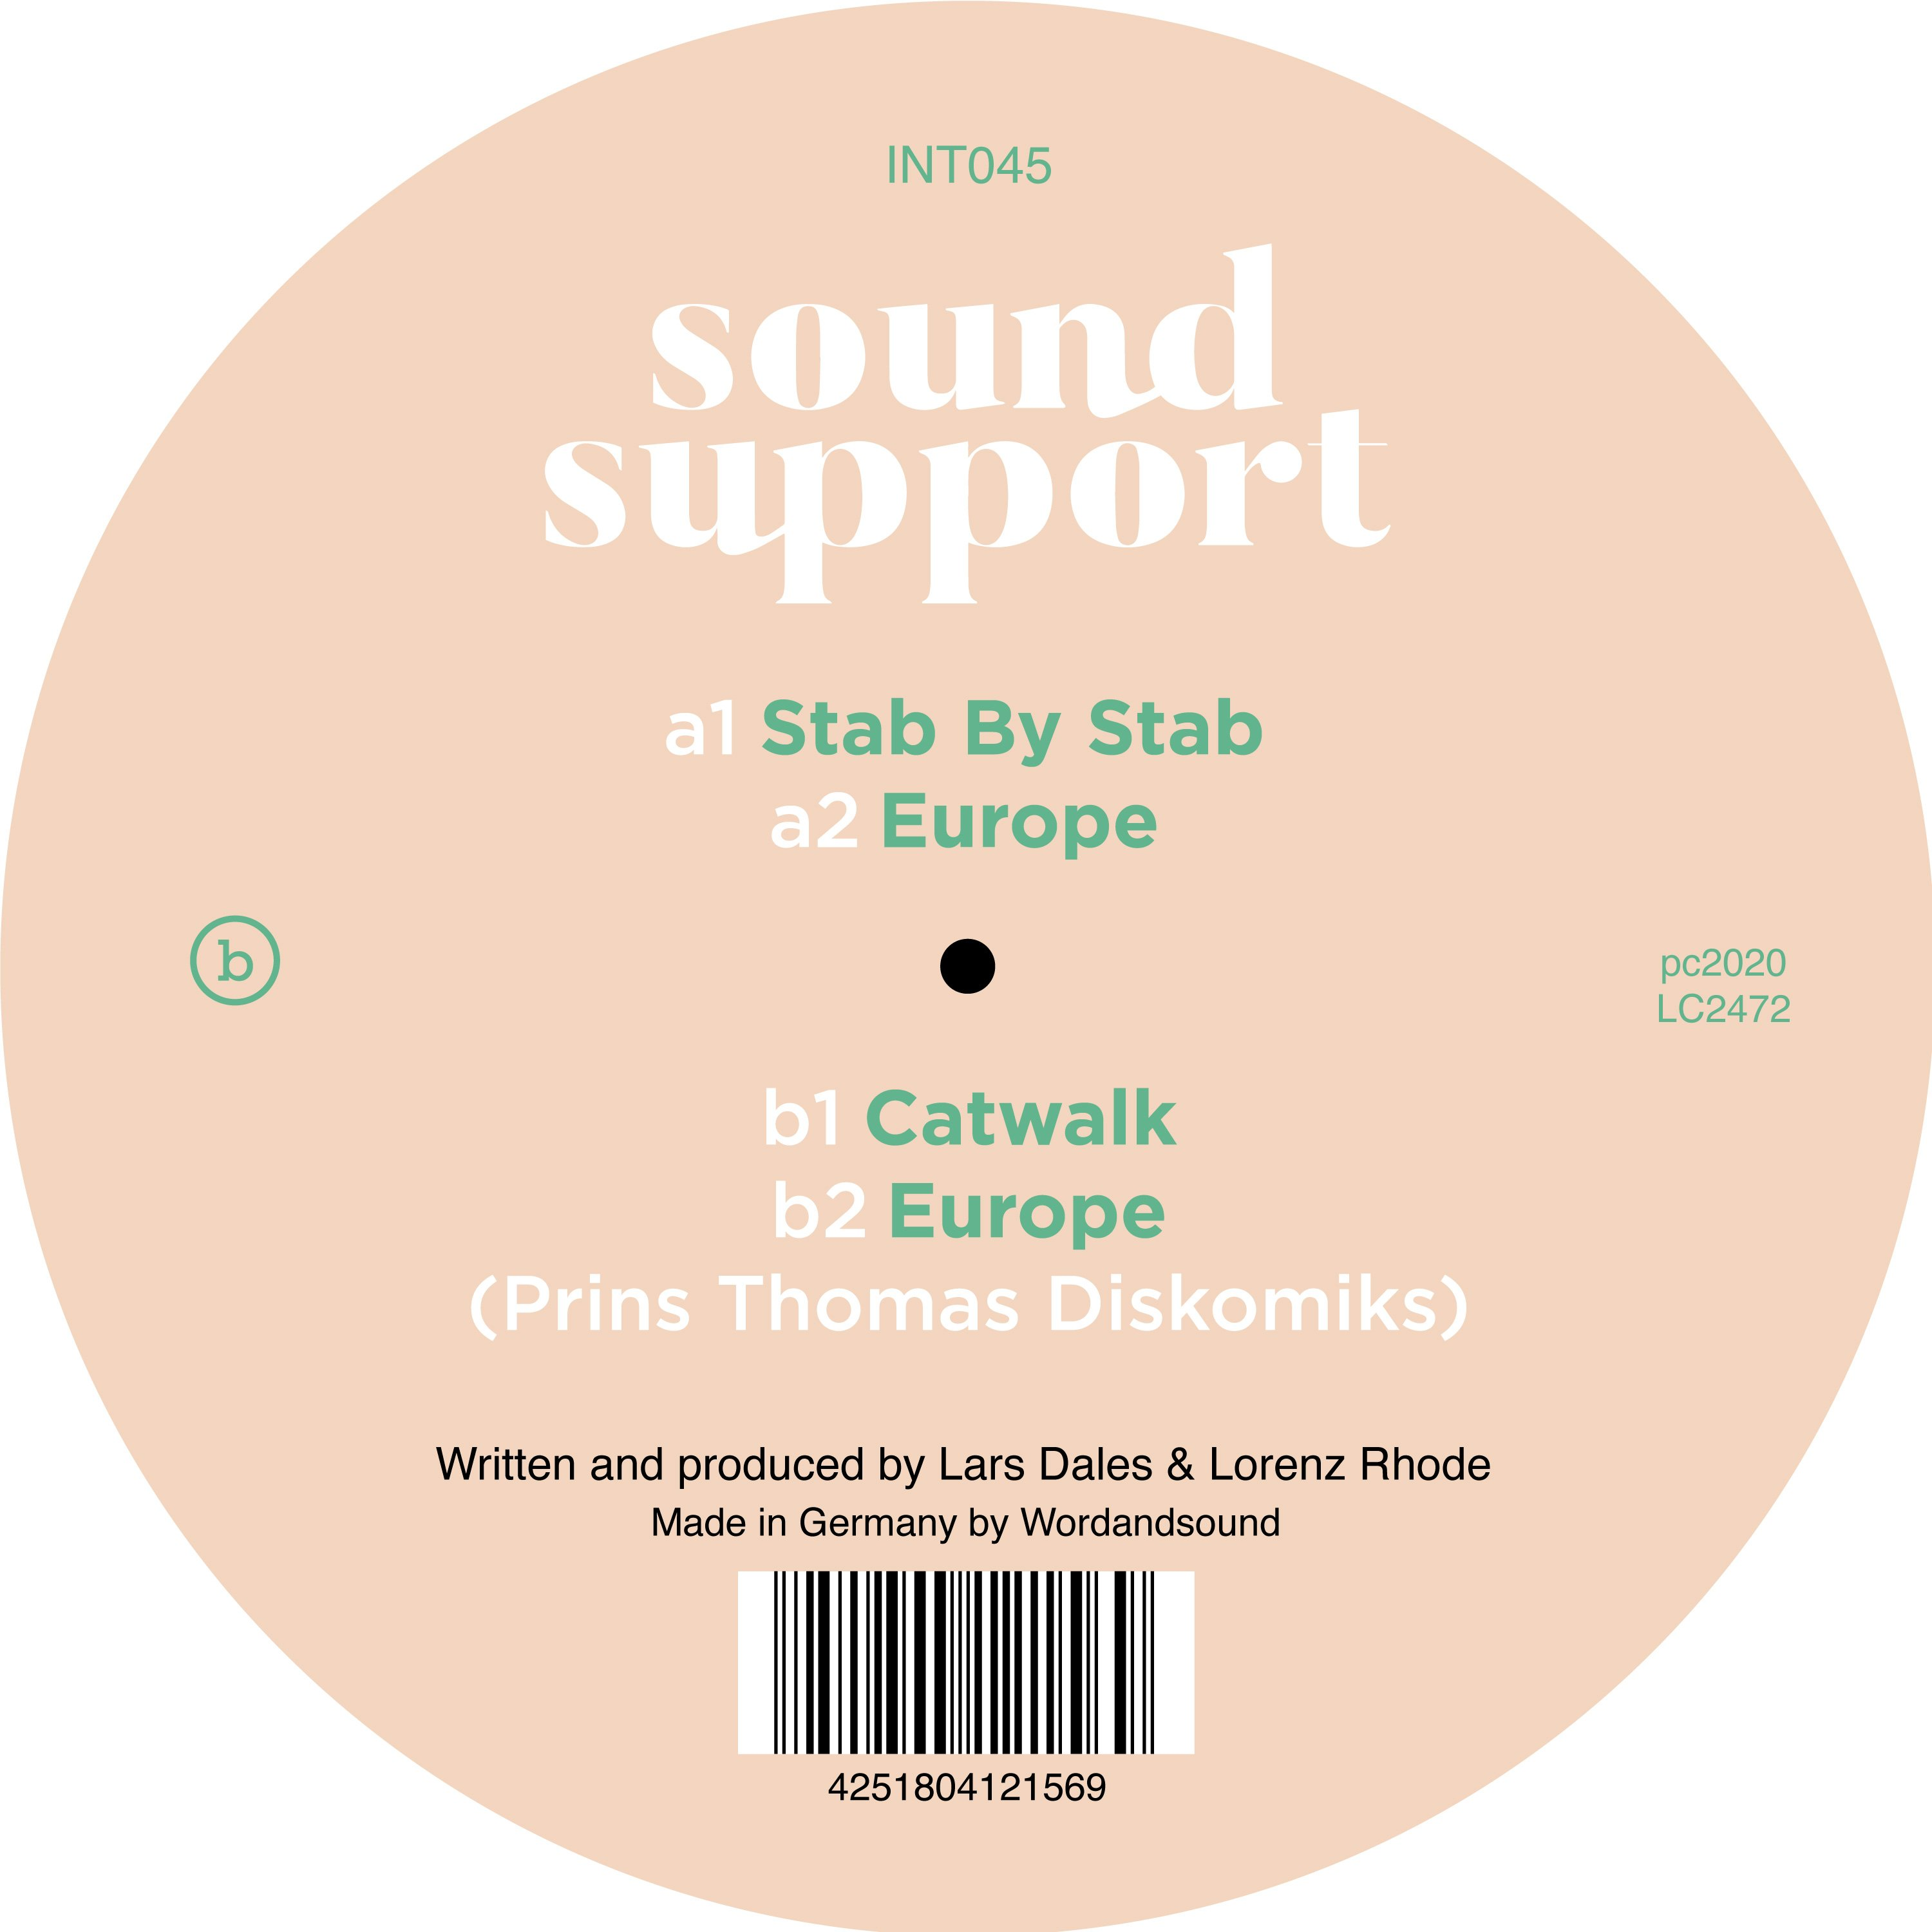 Sound Support - Stab By Stab